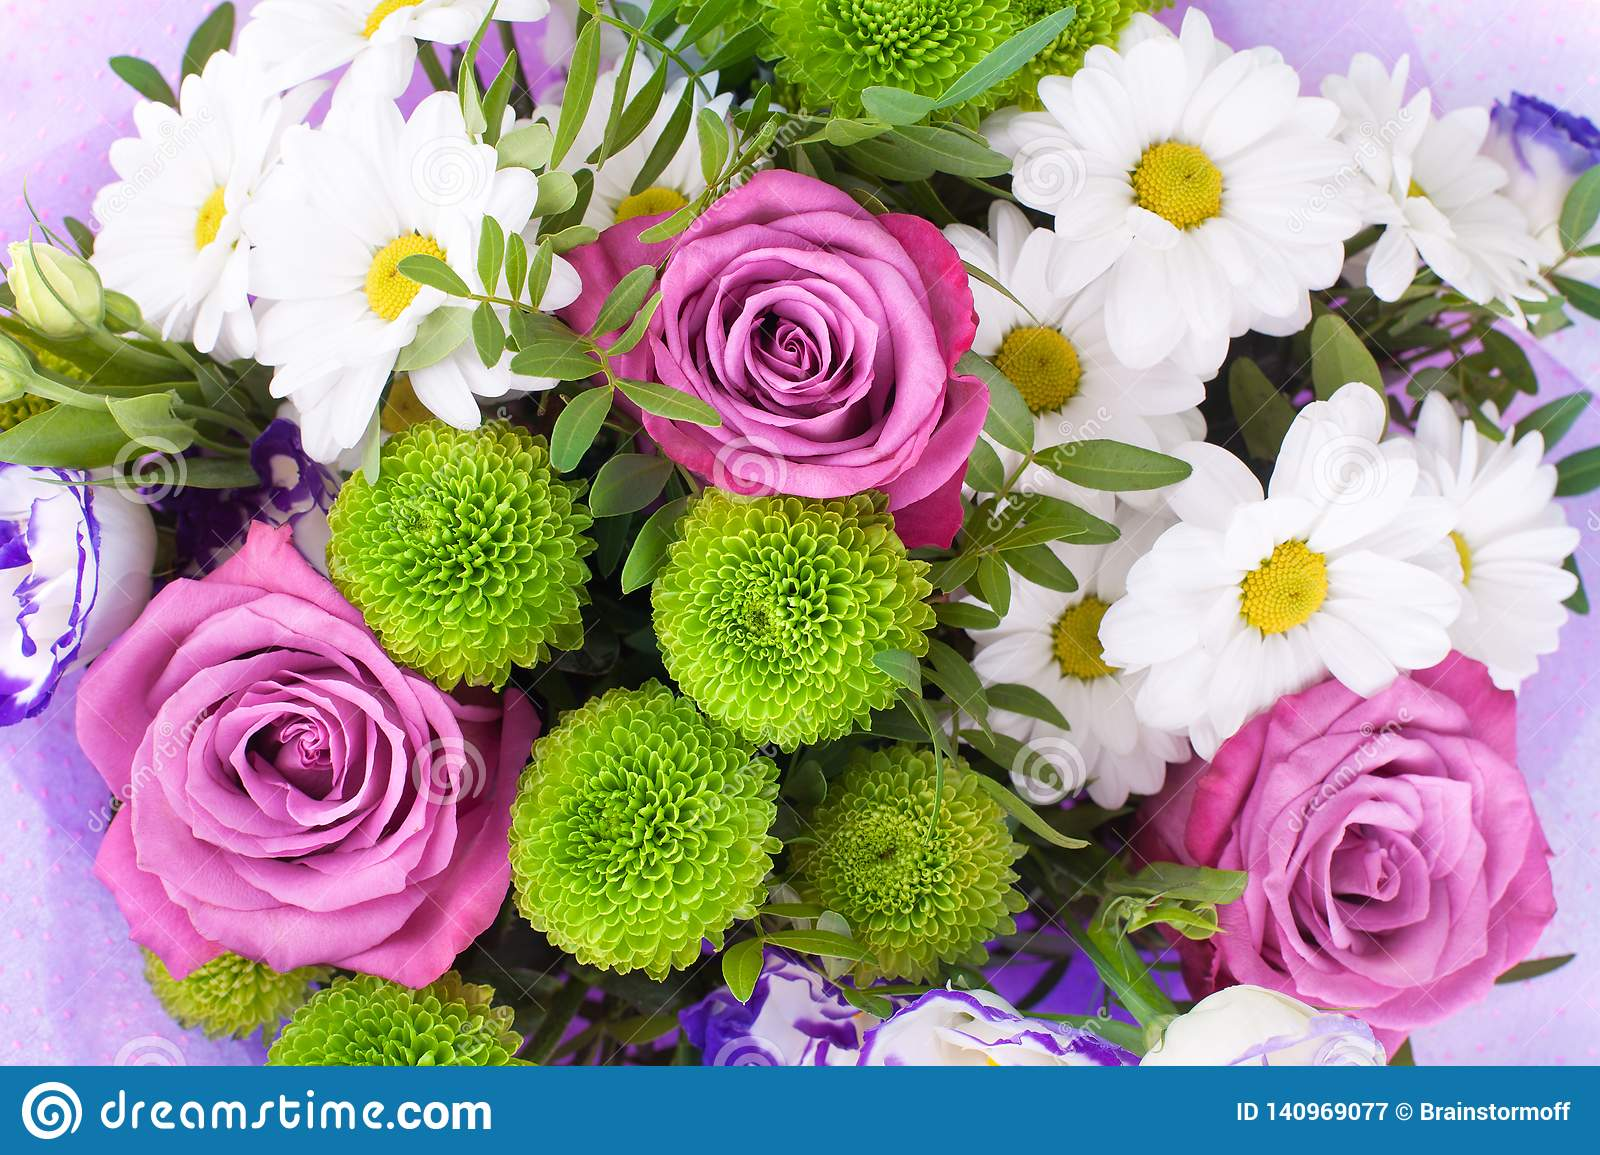 Bouquet of flowers pink roses, white chrysanthemums with green leaves on white background isolated close up